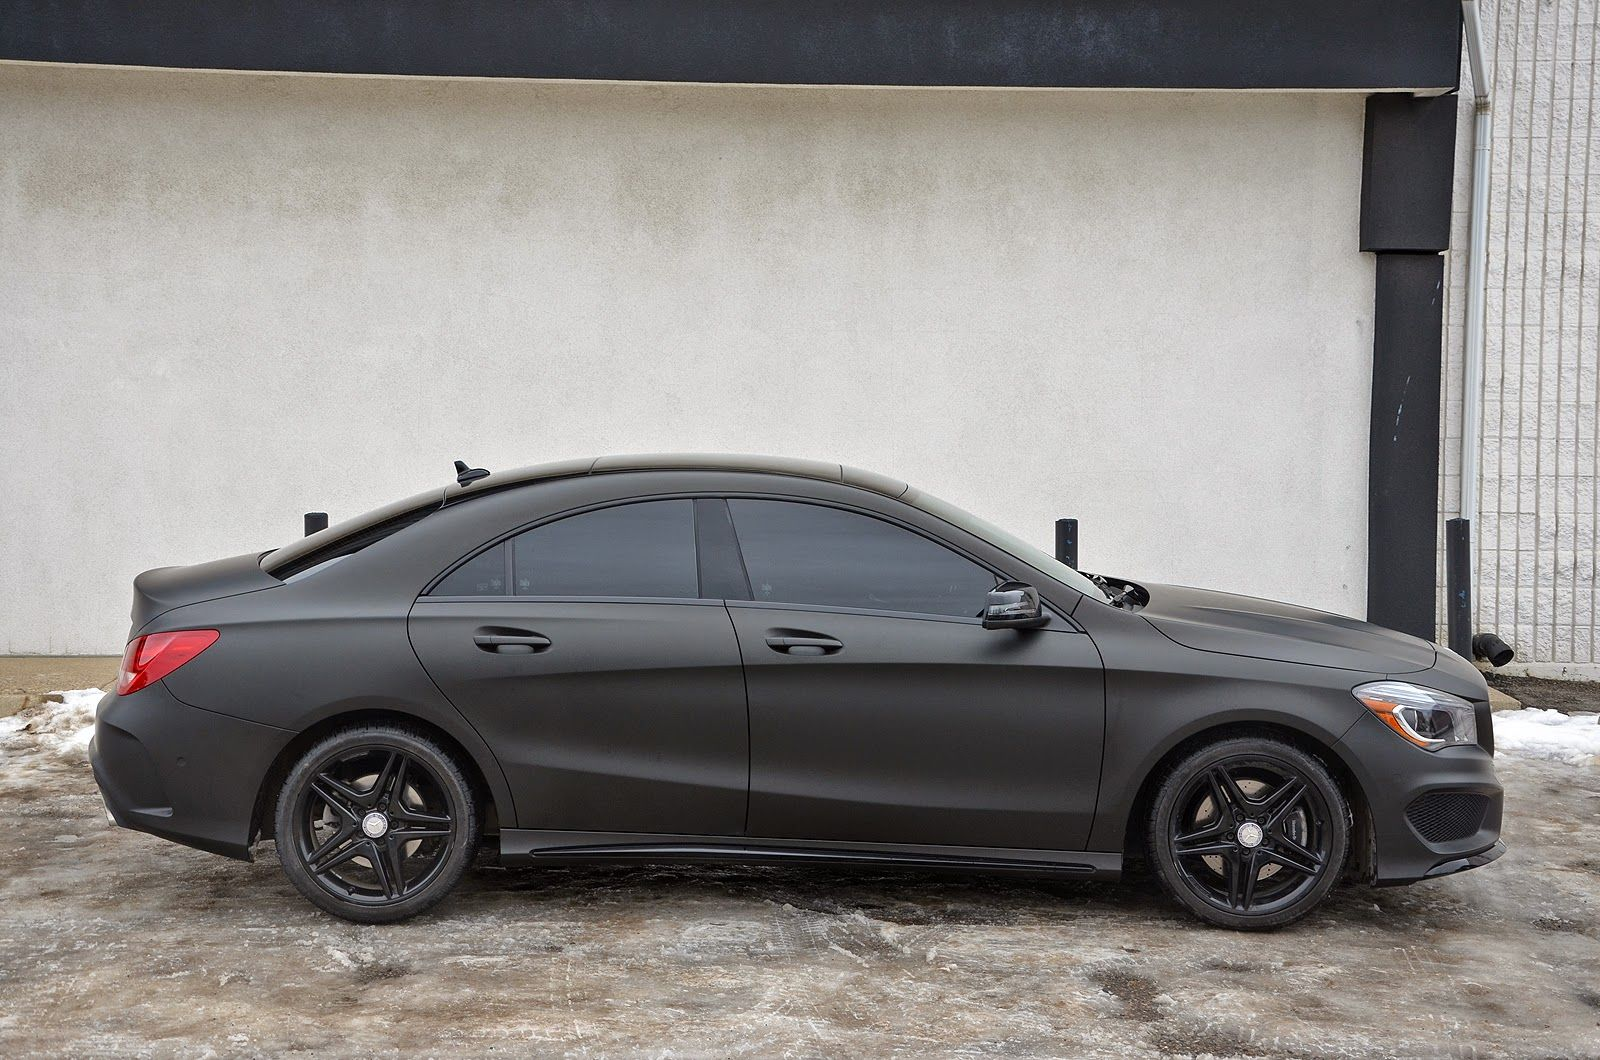 Black On Black Matte Black Wrap On A Mercedes Benz Cla250 With